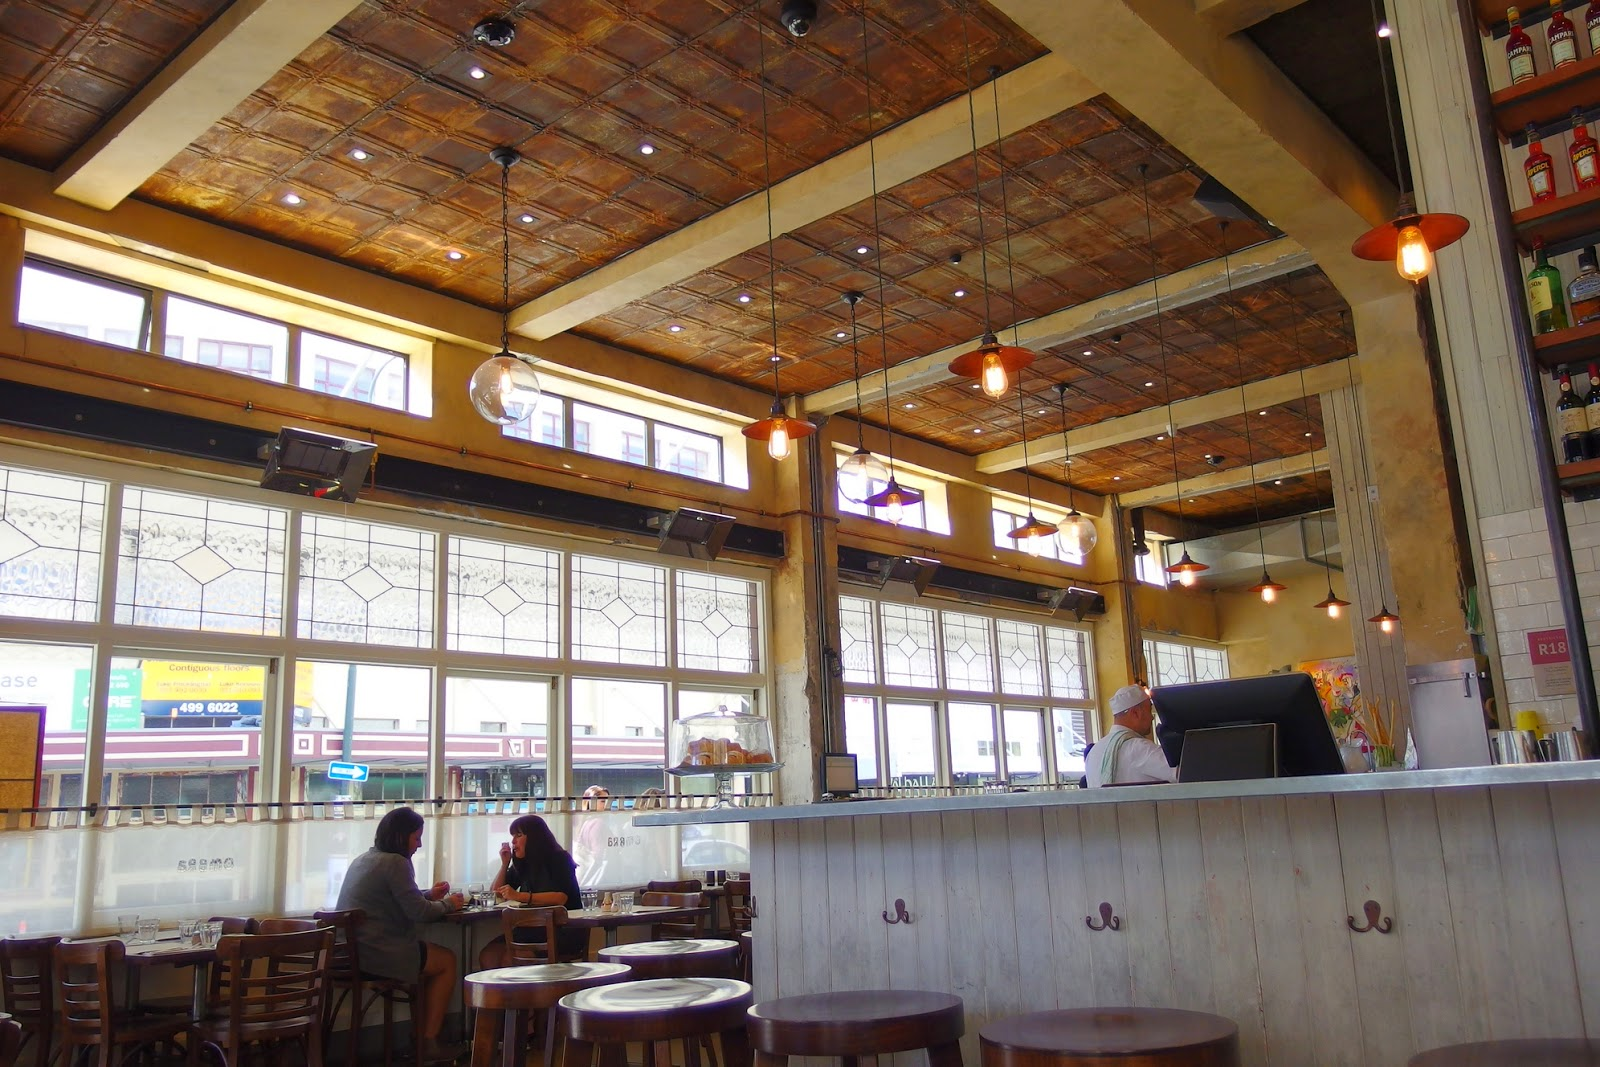 Beautiful natural light, high ceiling and wooden framed windows